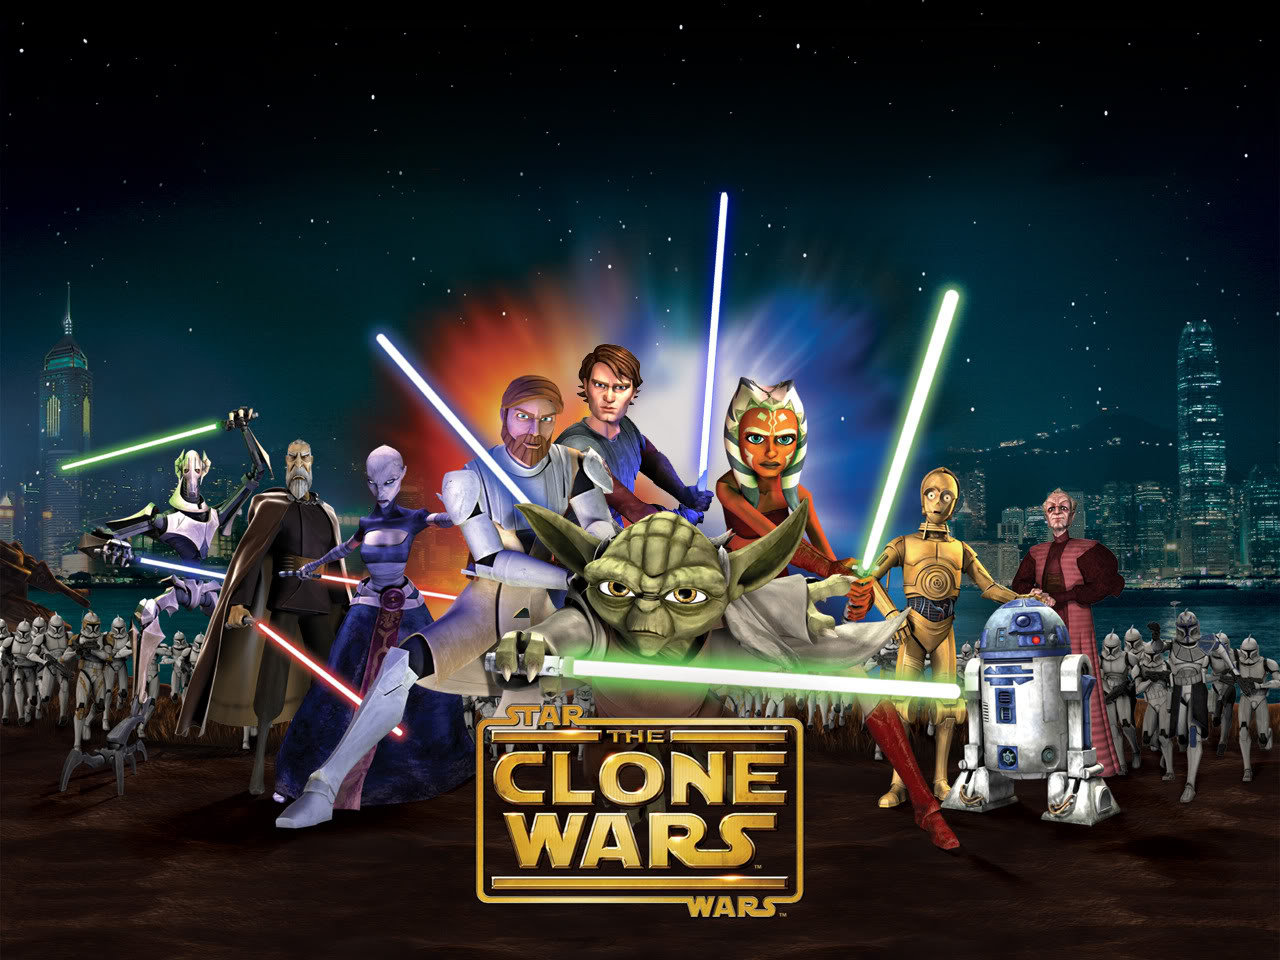 Ian Abercrombie, Matthew Wood, Dee Bradley Baker, Corey Burton, Ashley Eckstein, Nika Futterman, Tom Kane, James Arnold Taylor, and Matt Lanter in Star Wars: The Clone Wars (2008)